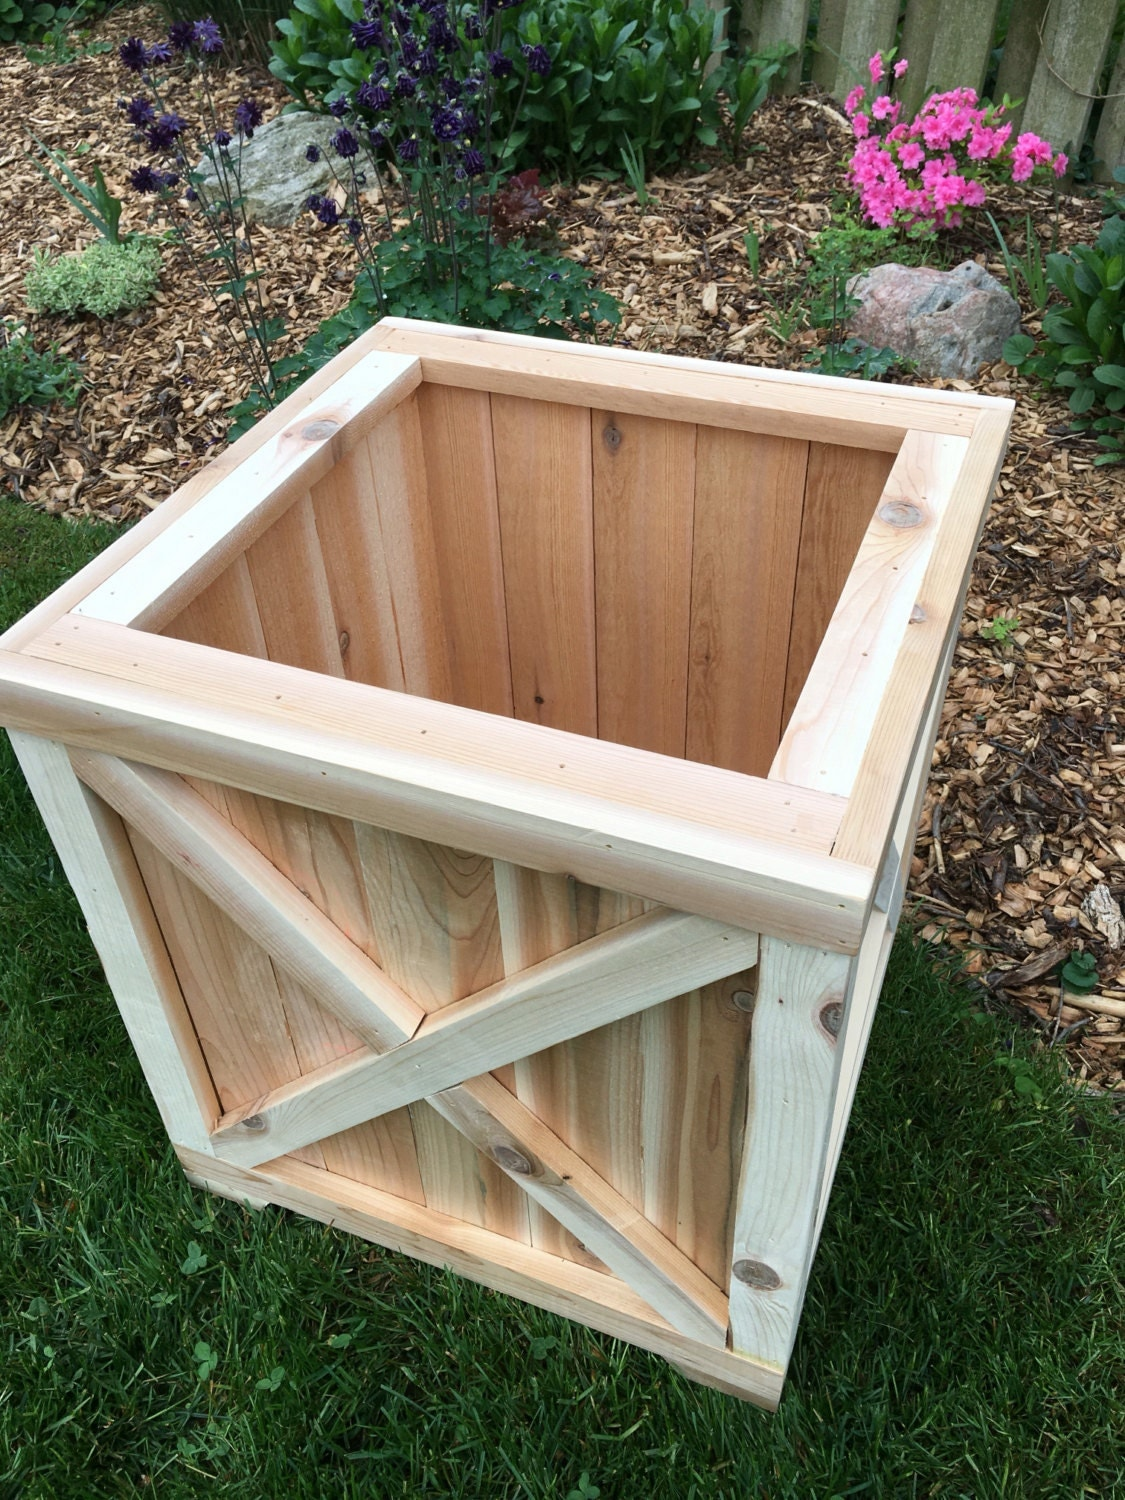 Cedar Planter Box Planter Wood Planter Cedar Box Outdoor Wood